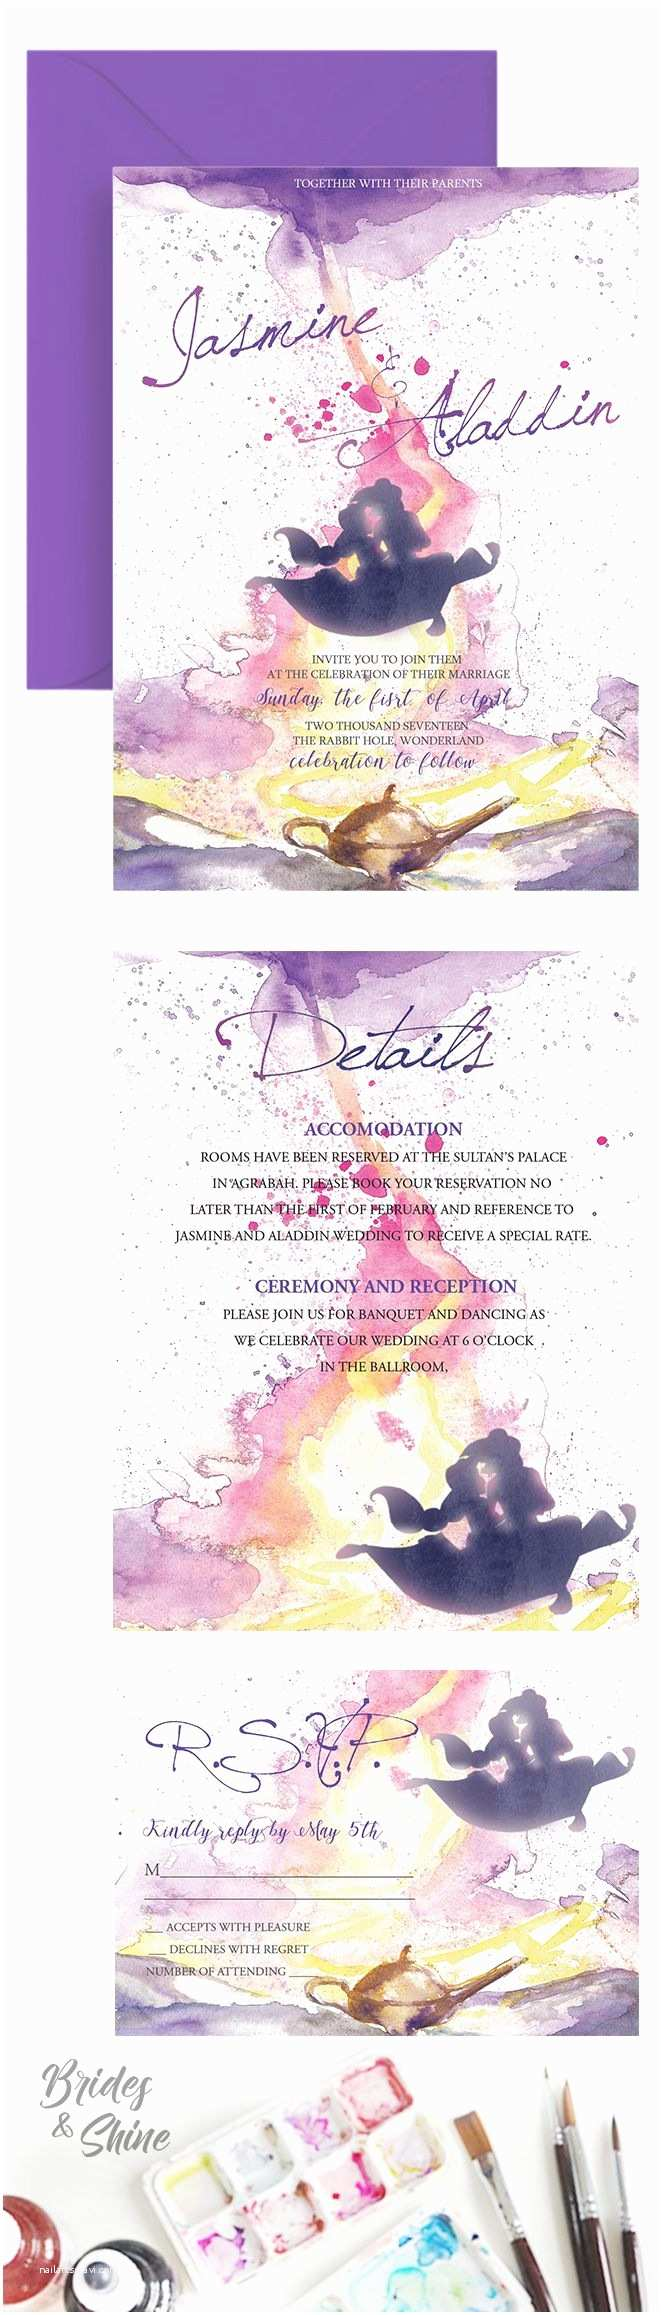 Disney Wedding Invitations 1000 Ideas About Disney Wedding Invitations On Pinterest